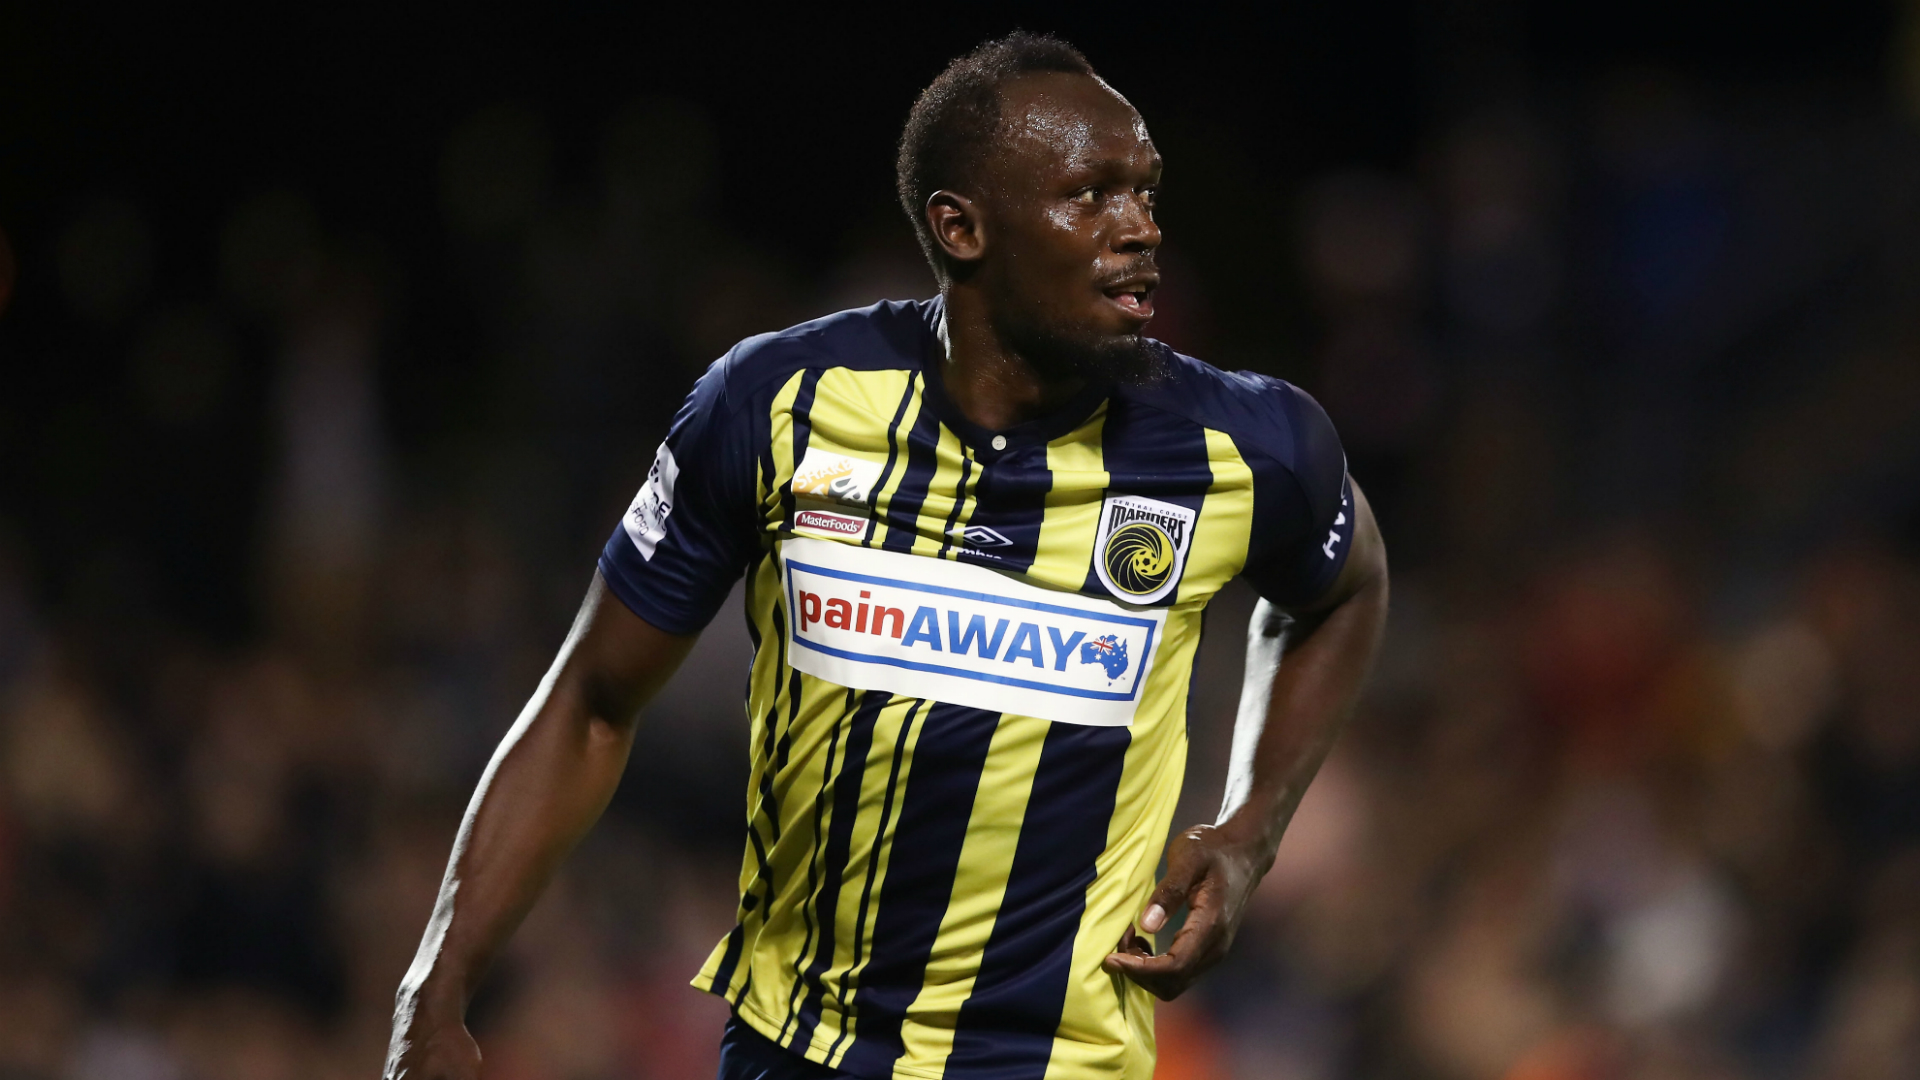 Usain Bolt offered deal by Australian A-League soccer club, says agent